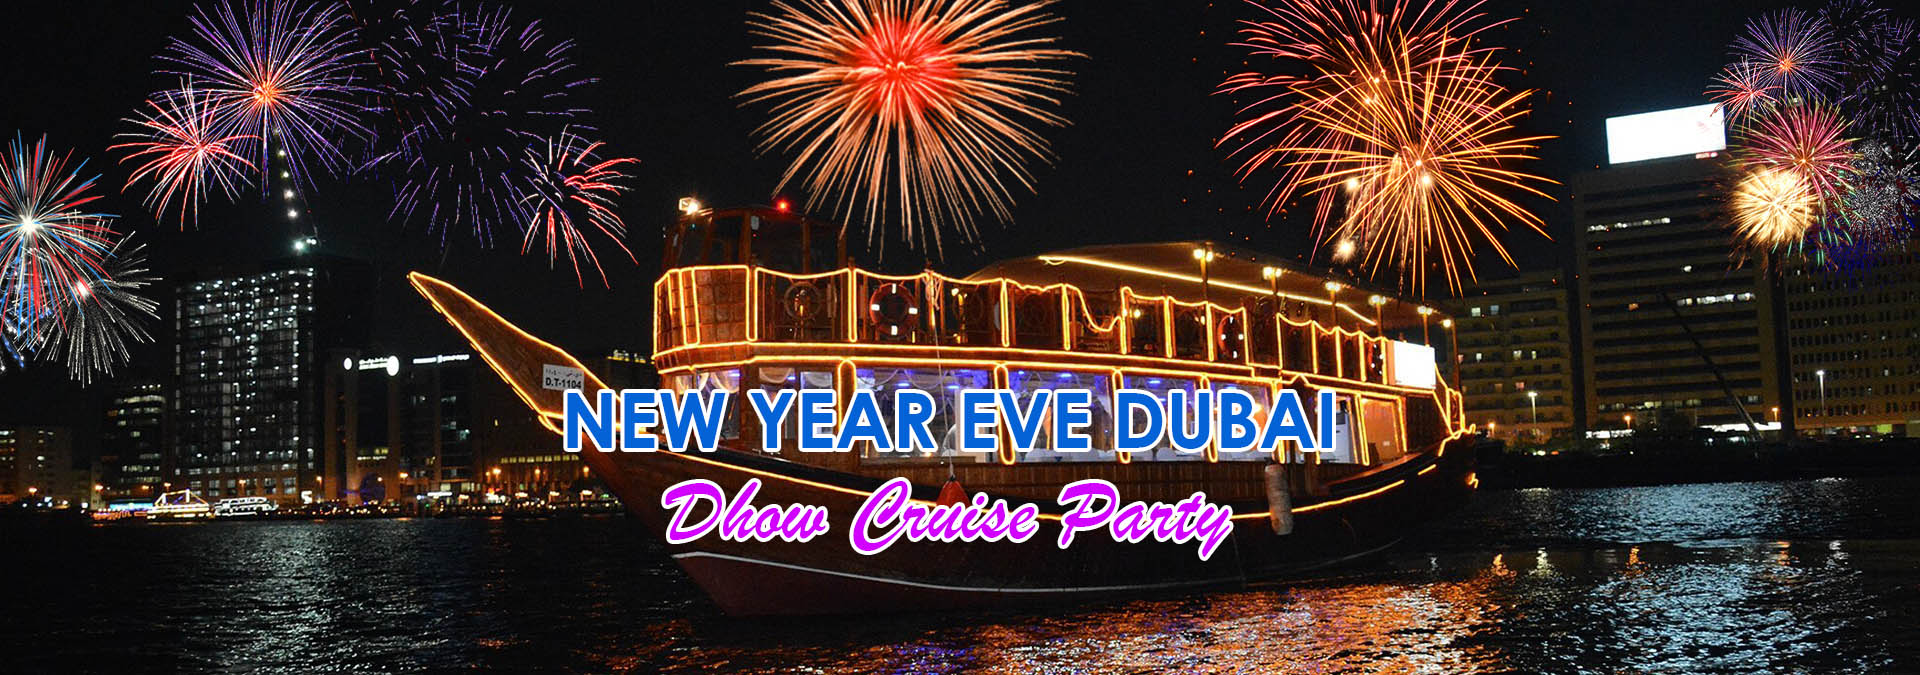 Cake New Years Eve 2018 : New Year s Eve Cruise Party Dubai 2018 with Dubai ...